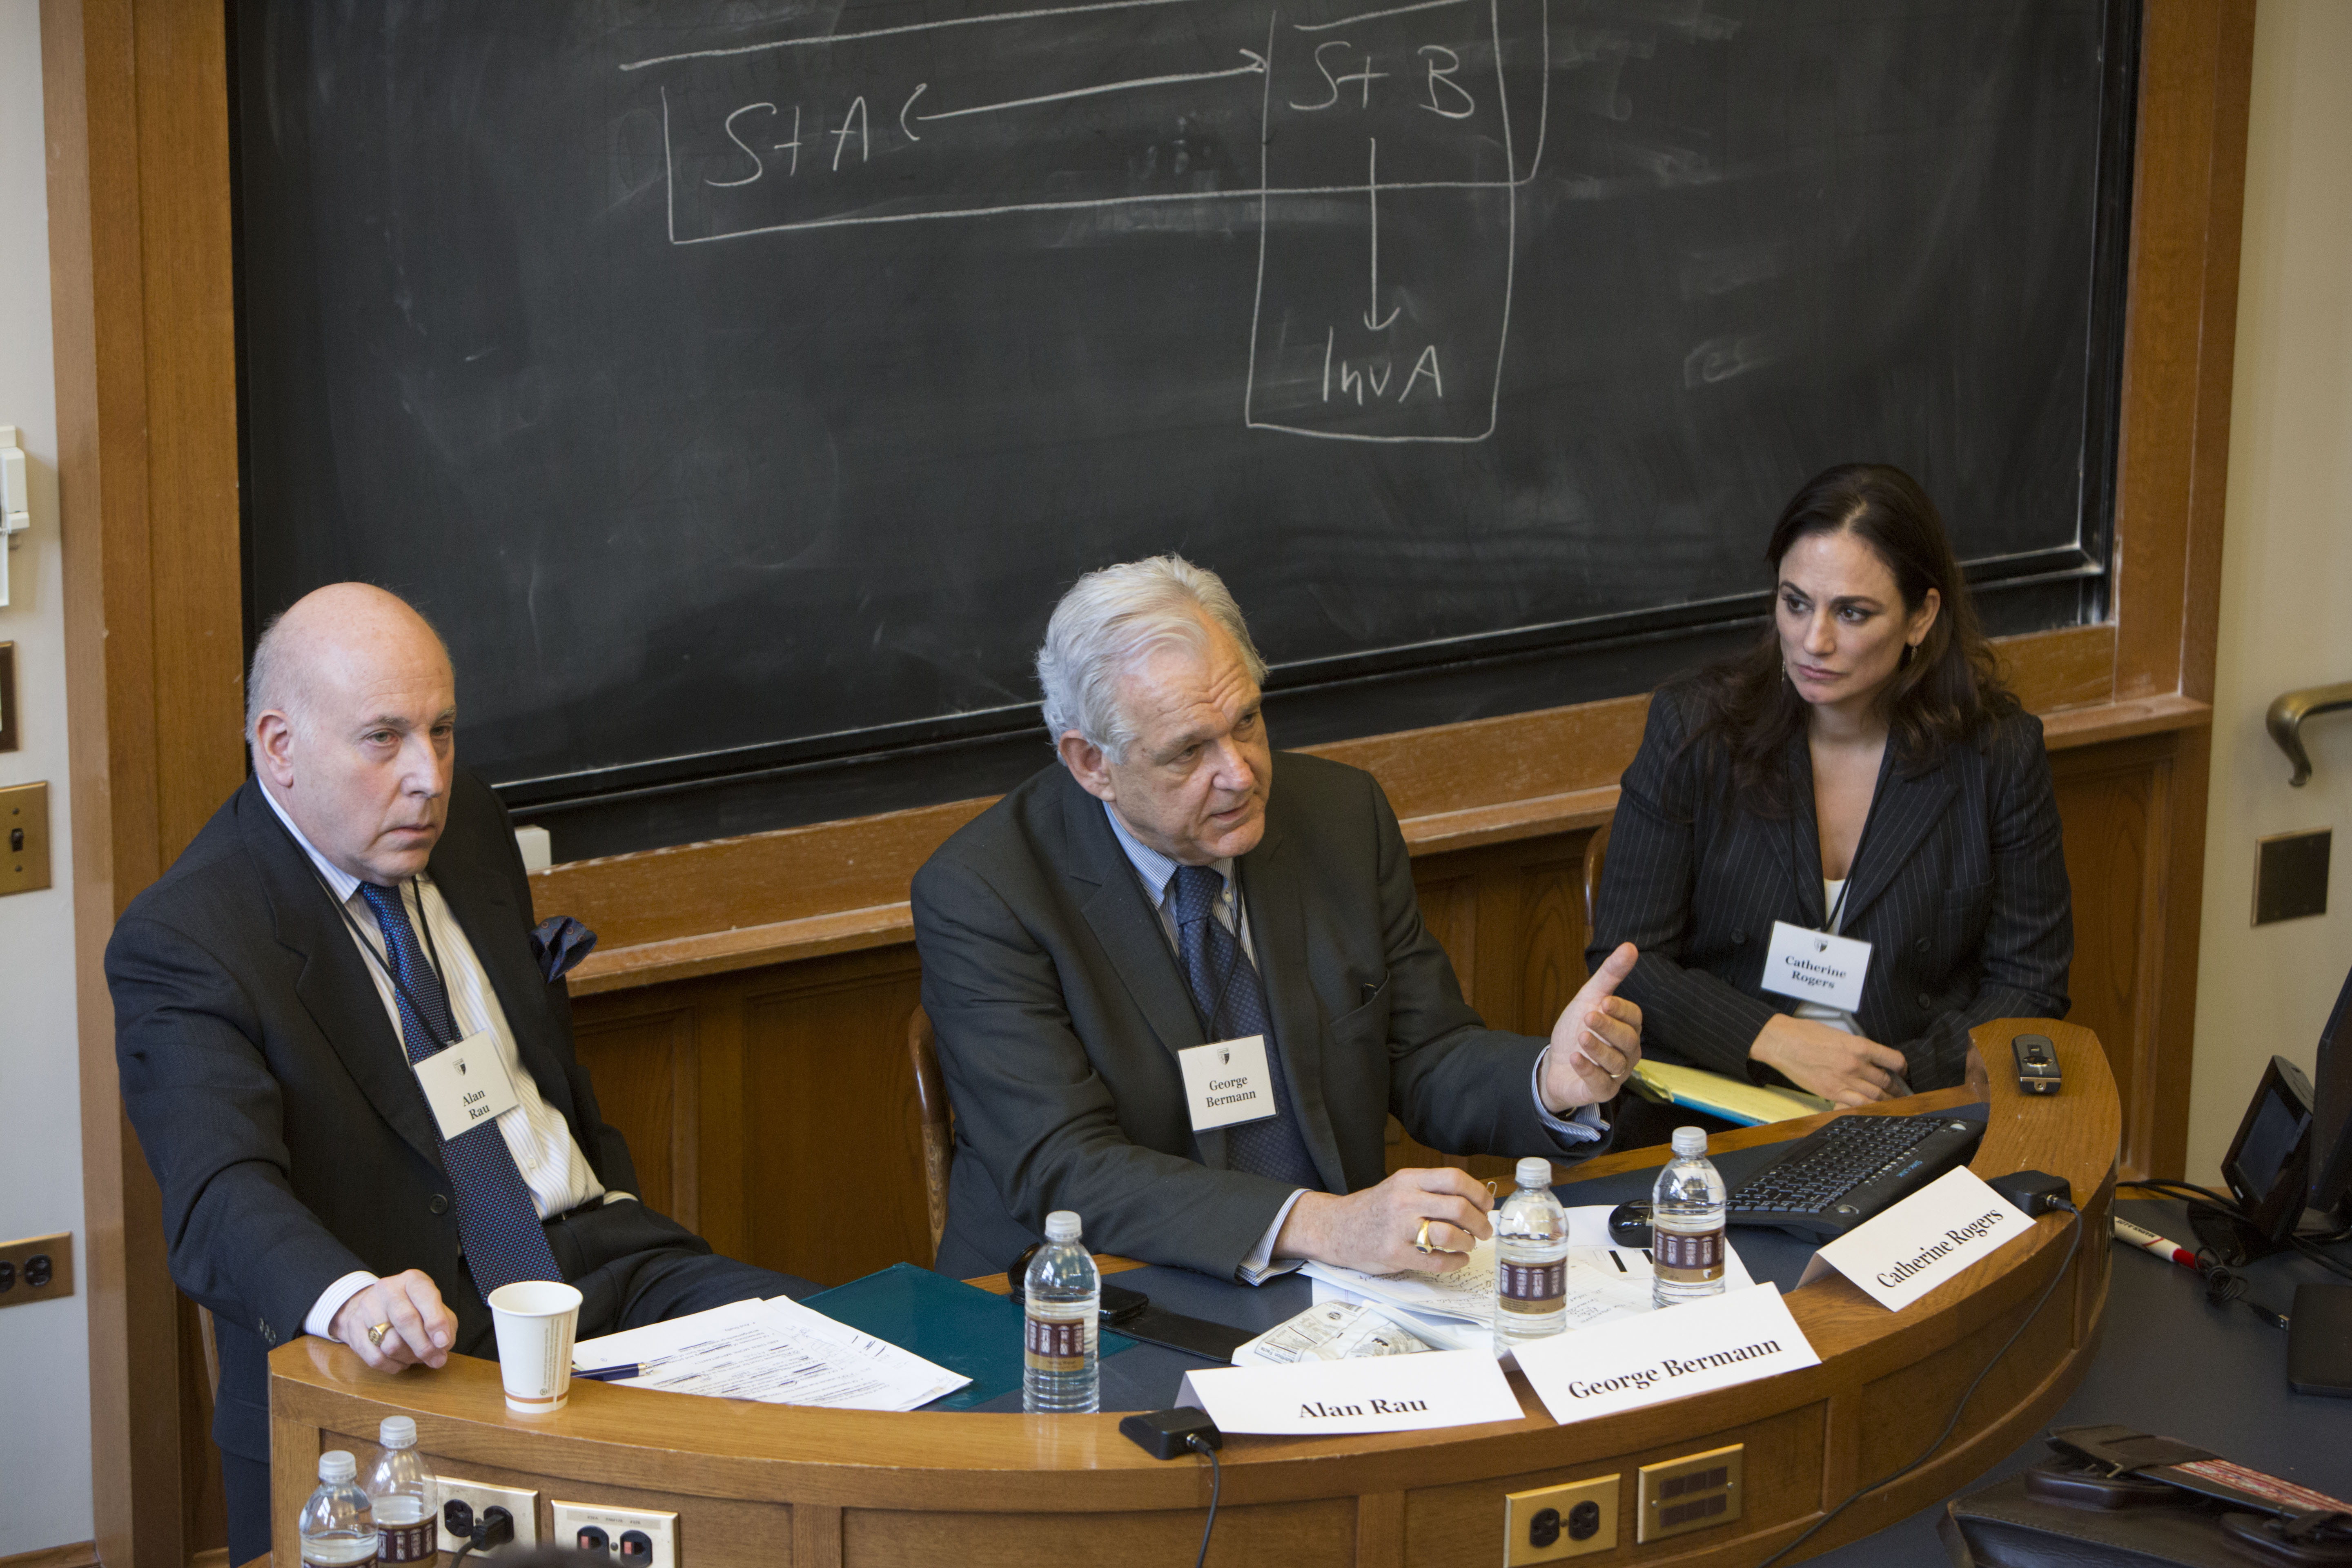 Texas Law Prof. Alan S. Rau, Columbia Law Prof. George Bermann, and Penn State Law Prof. Catherine Rogers